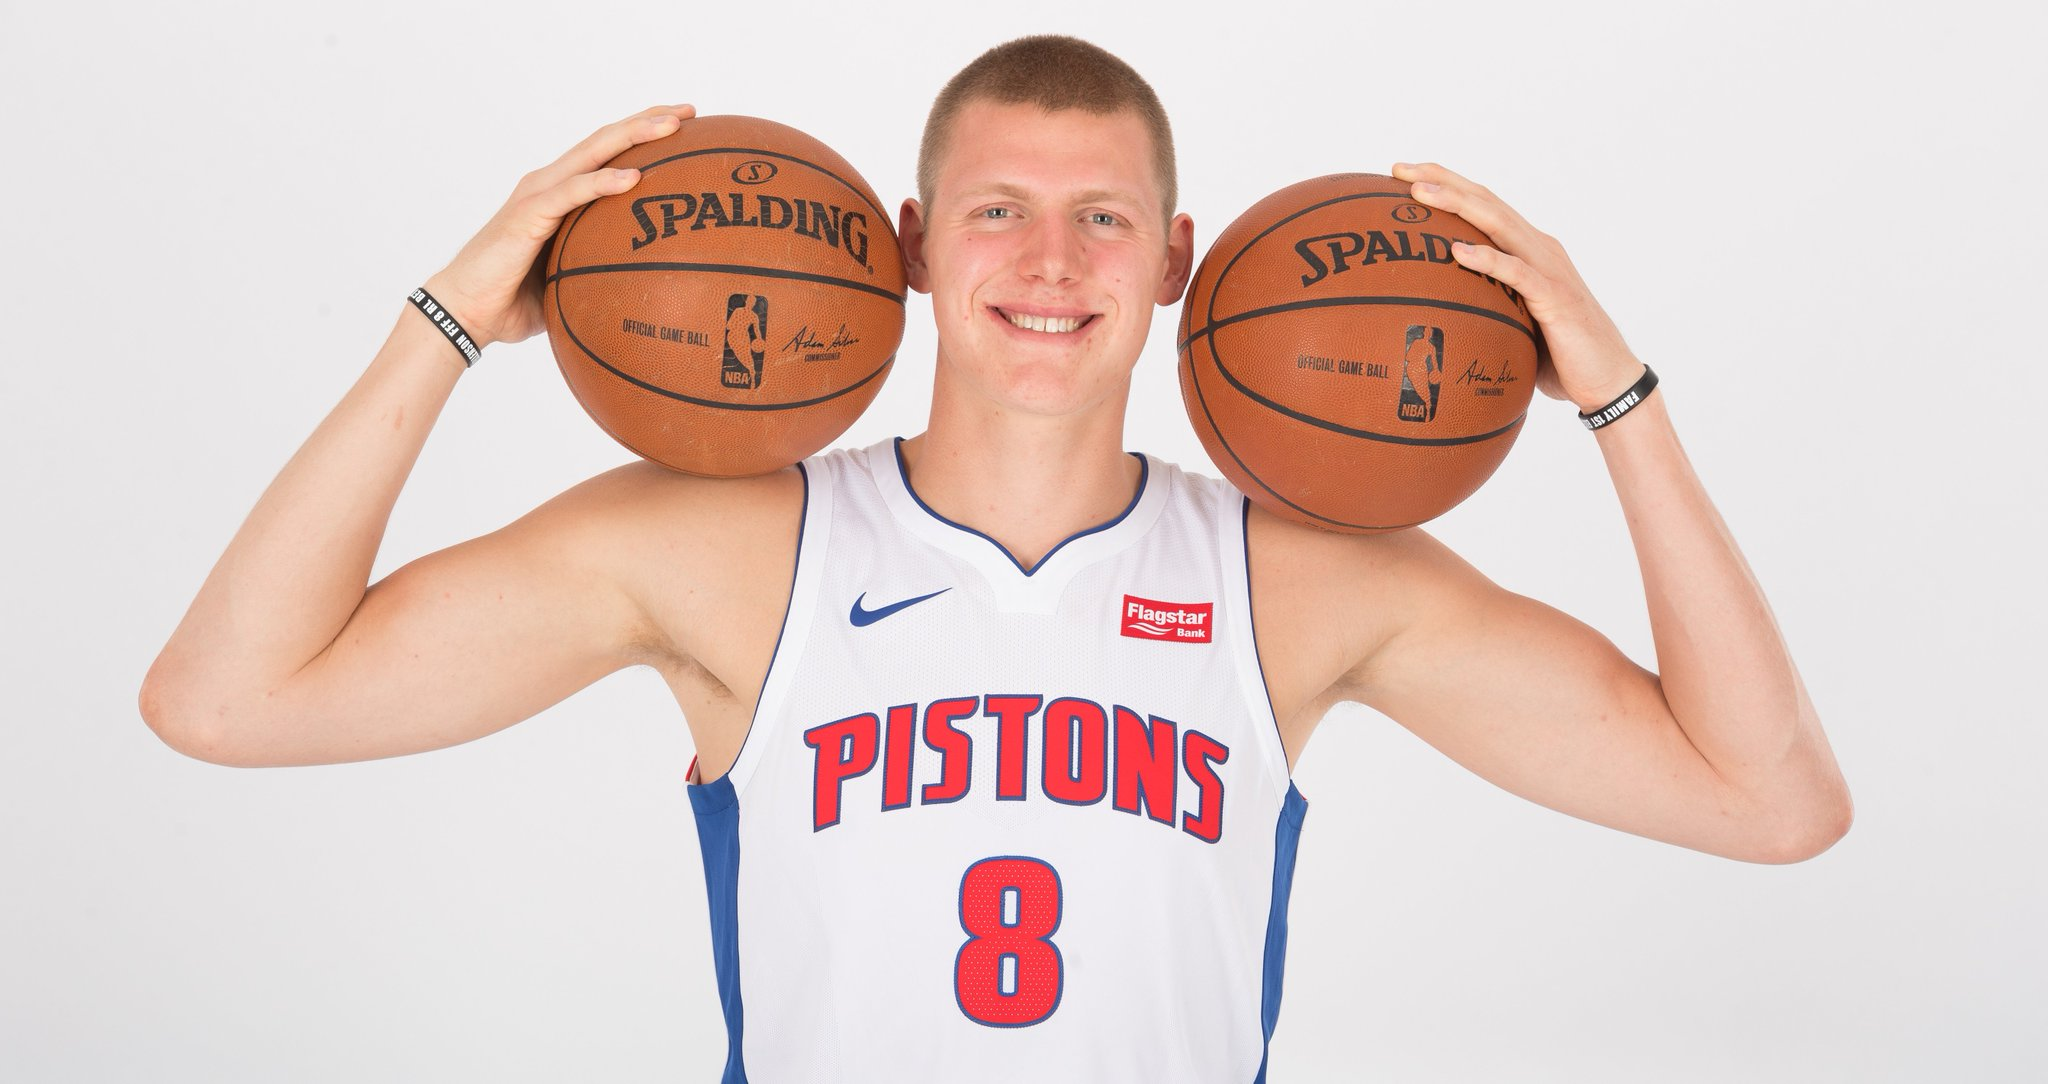 Join us in wishing @HenryEllenson13 of the @DetroitPistons a HAPPY 21st BIRTHDAY!  #NBABDAY #DetroitBasketball https://t.co/VSGwMsqRFk